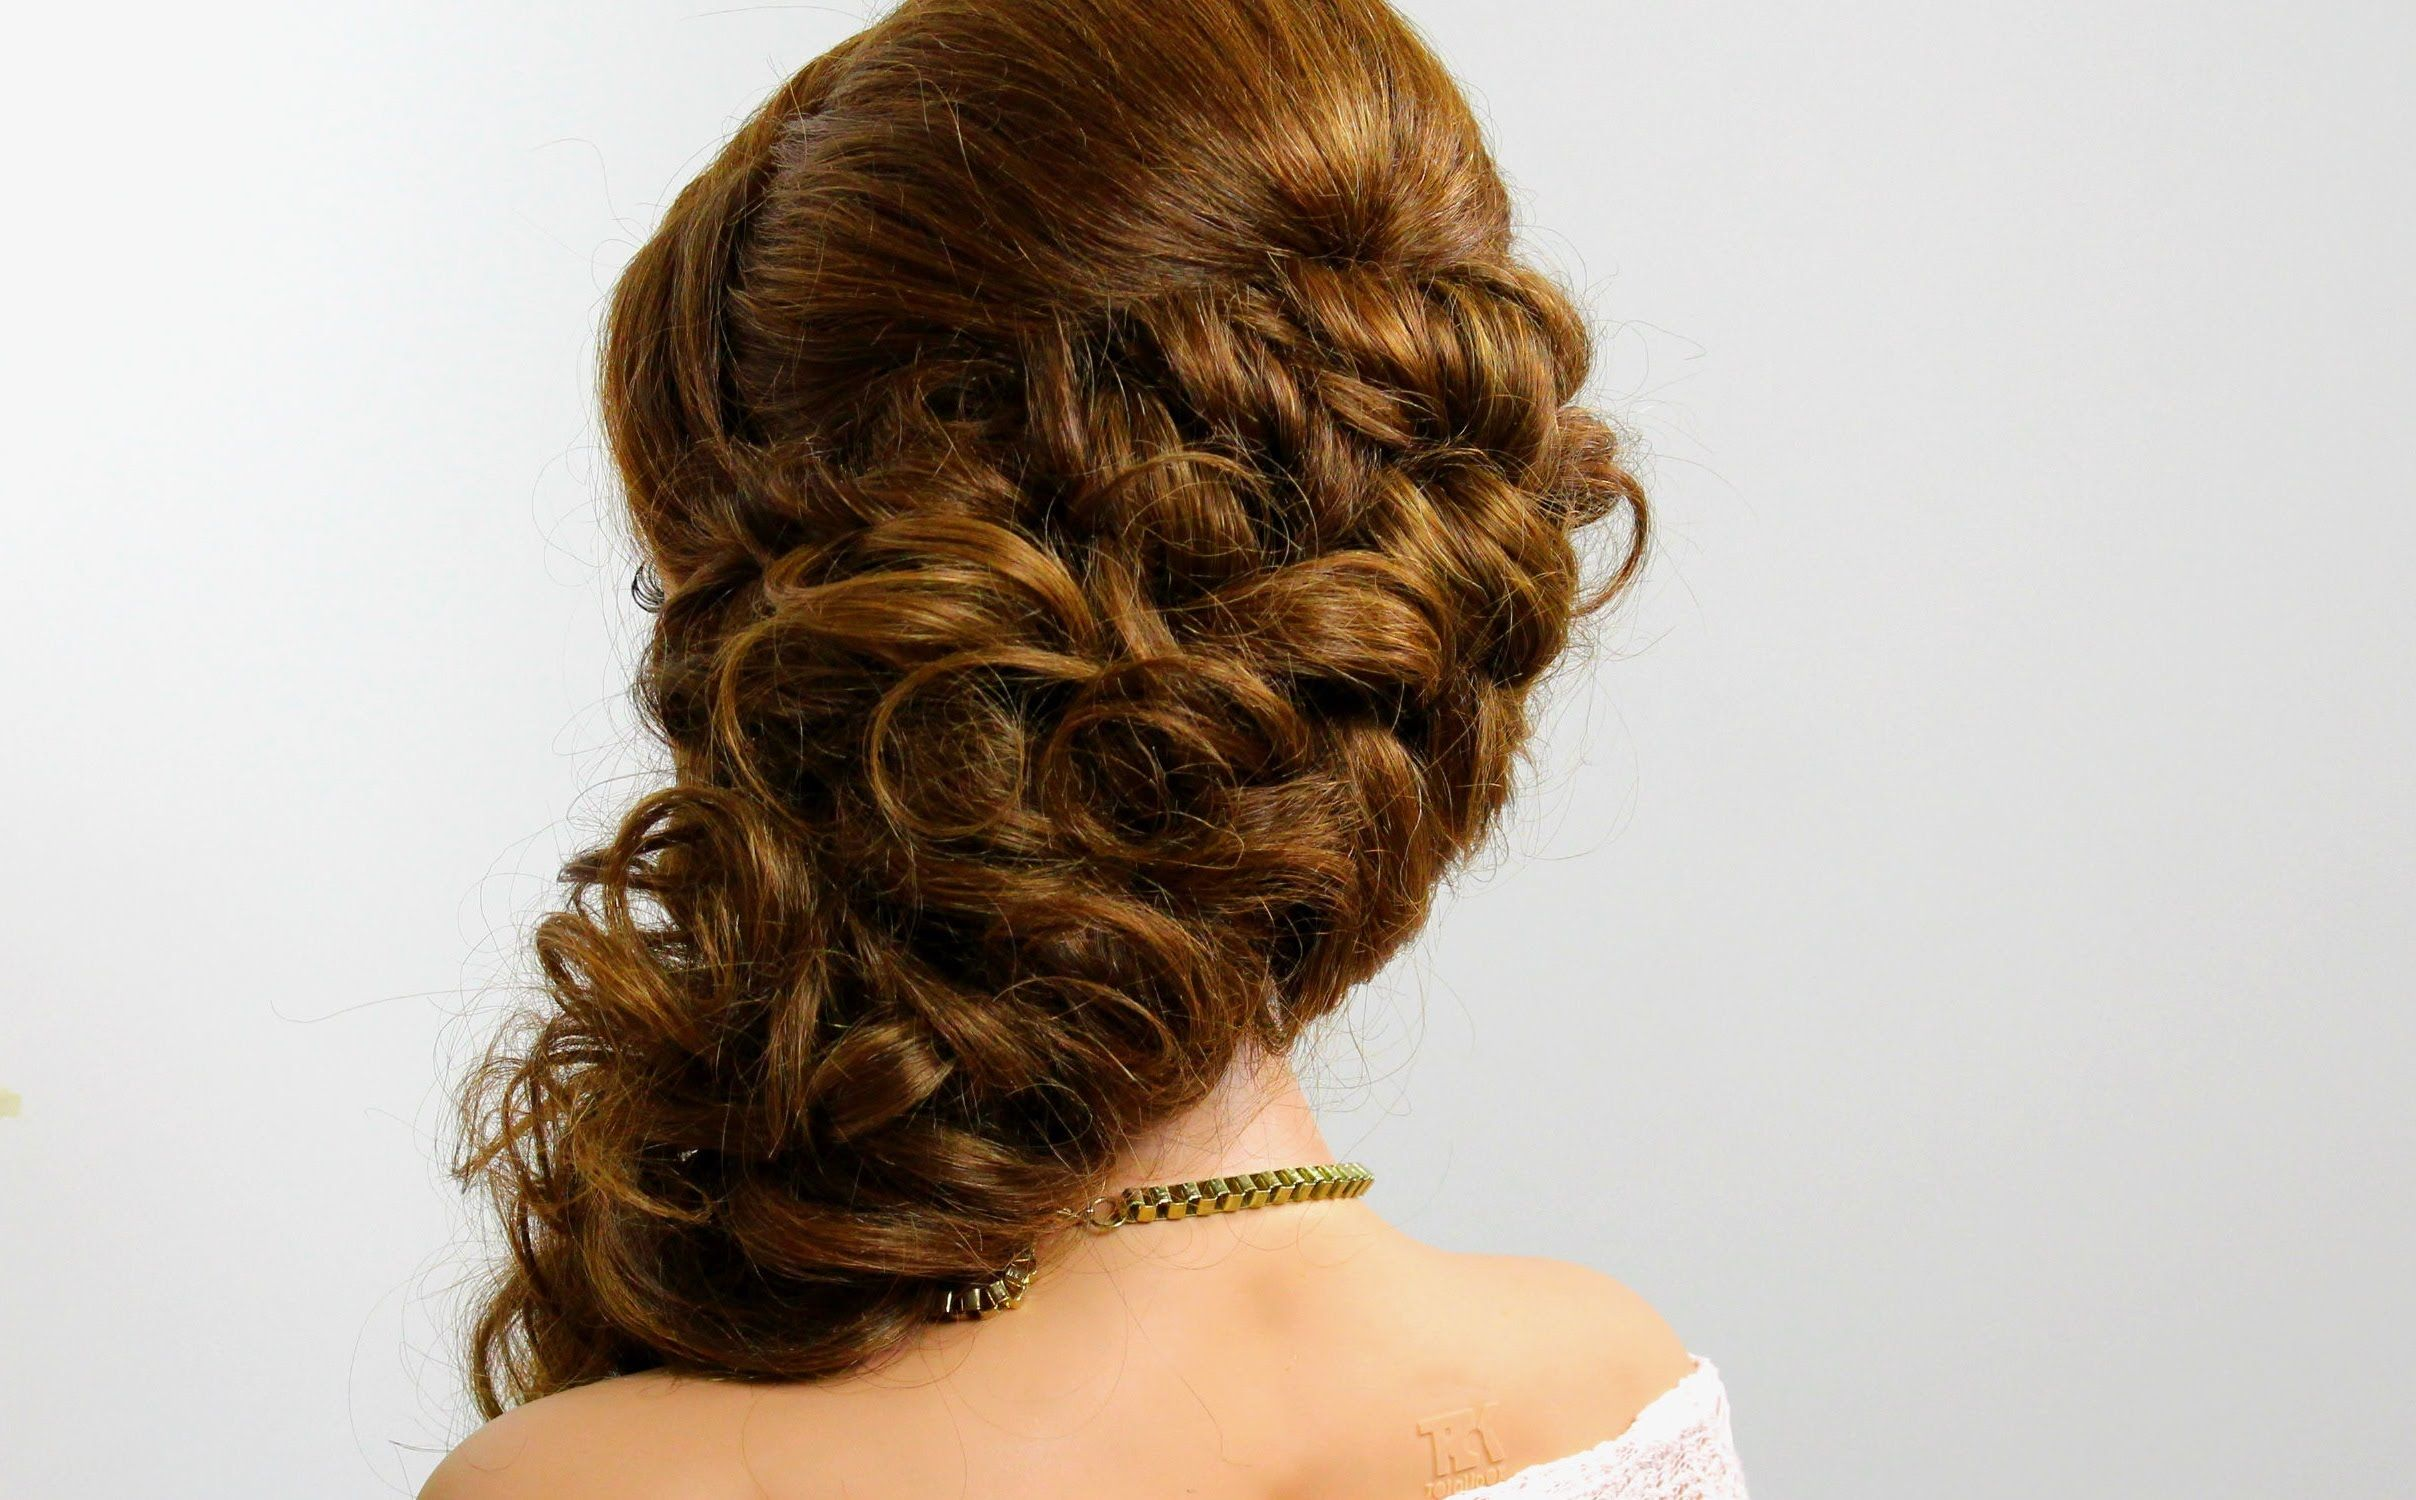 Bridal prom hairstyle for long hair braids womanbeauty and